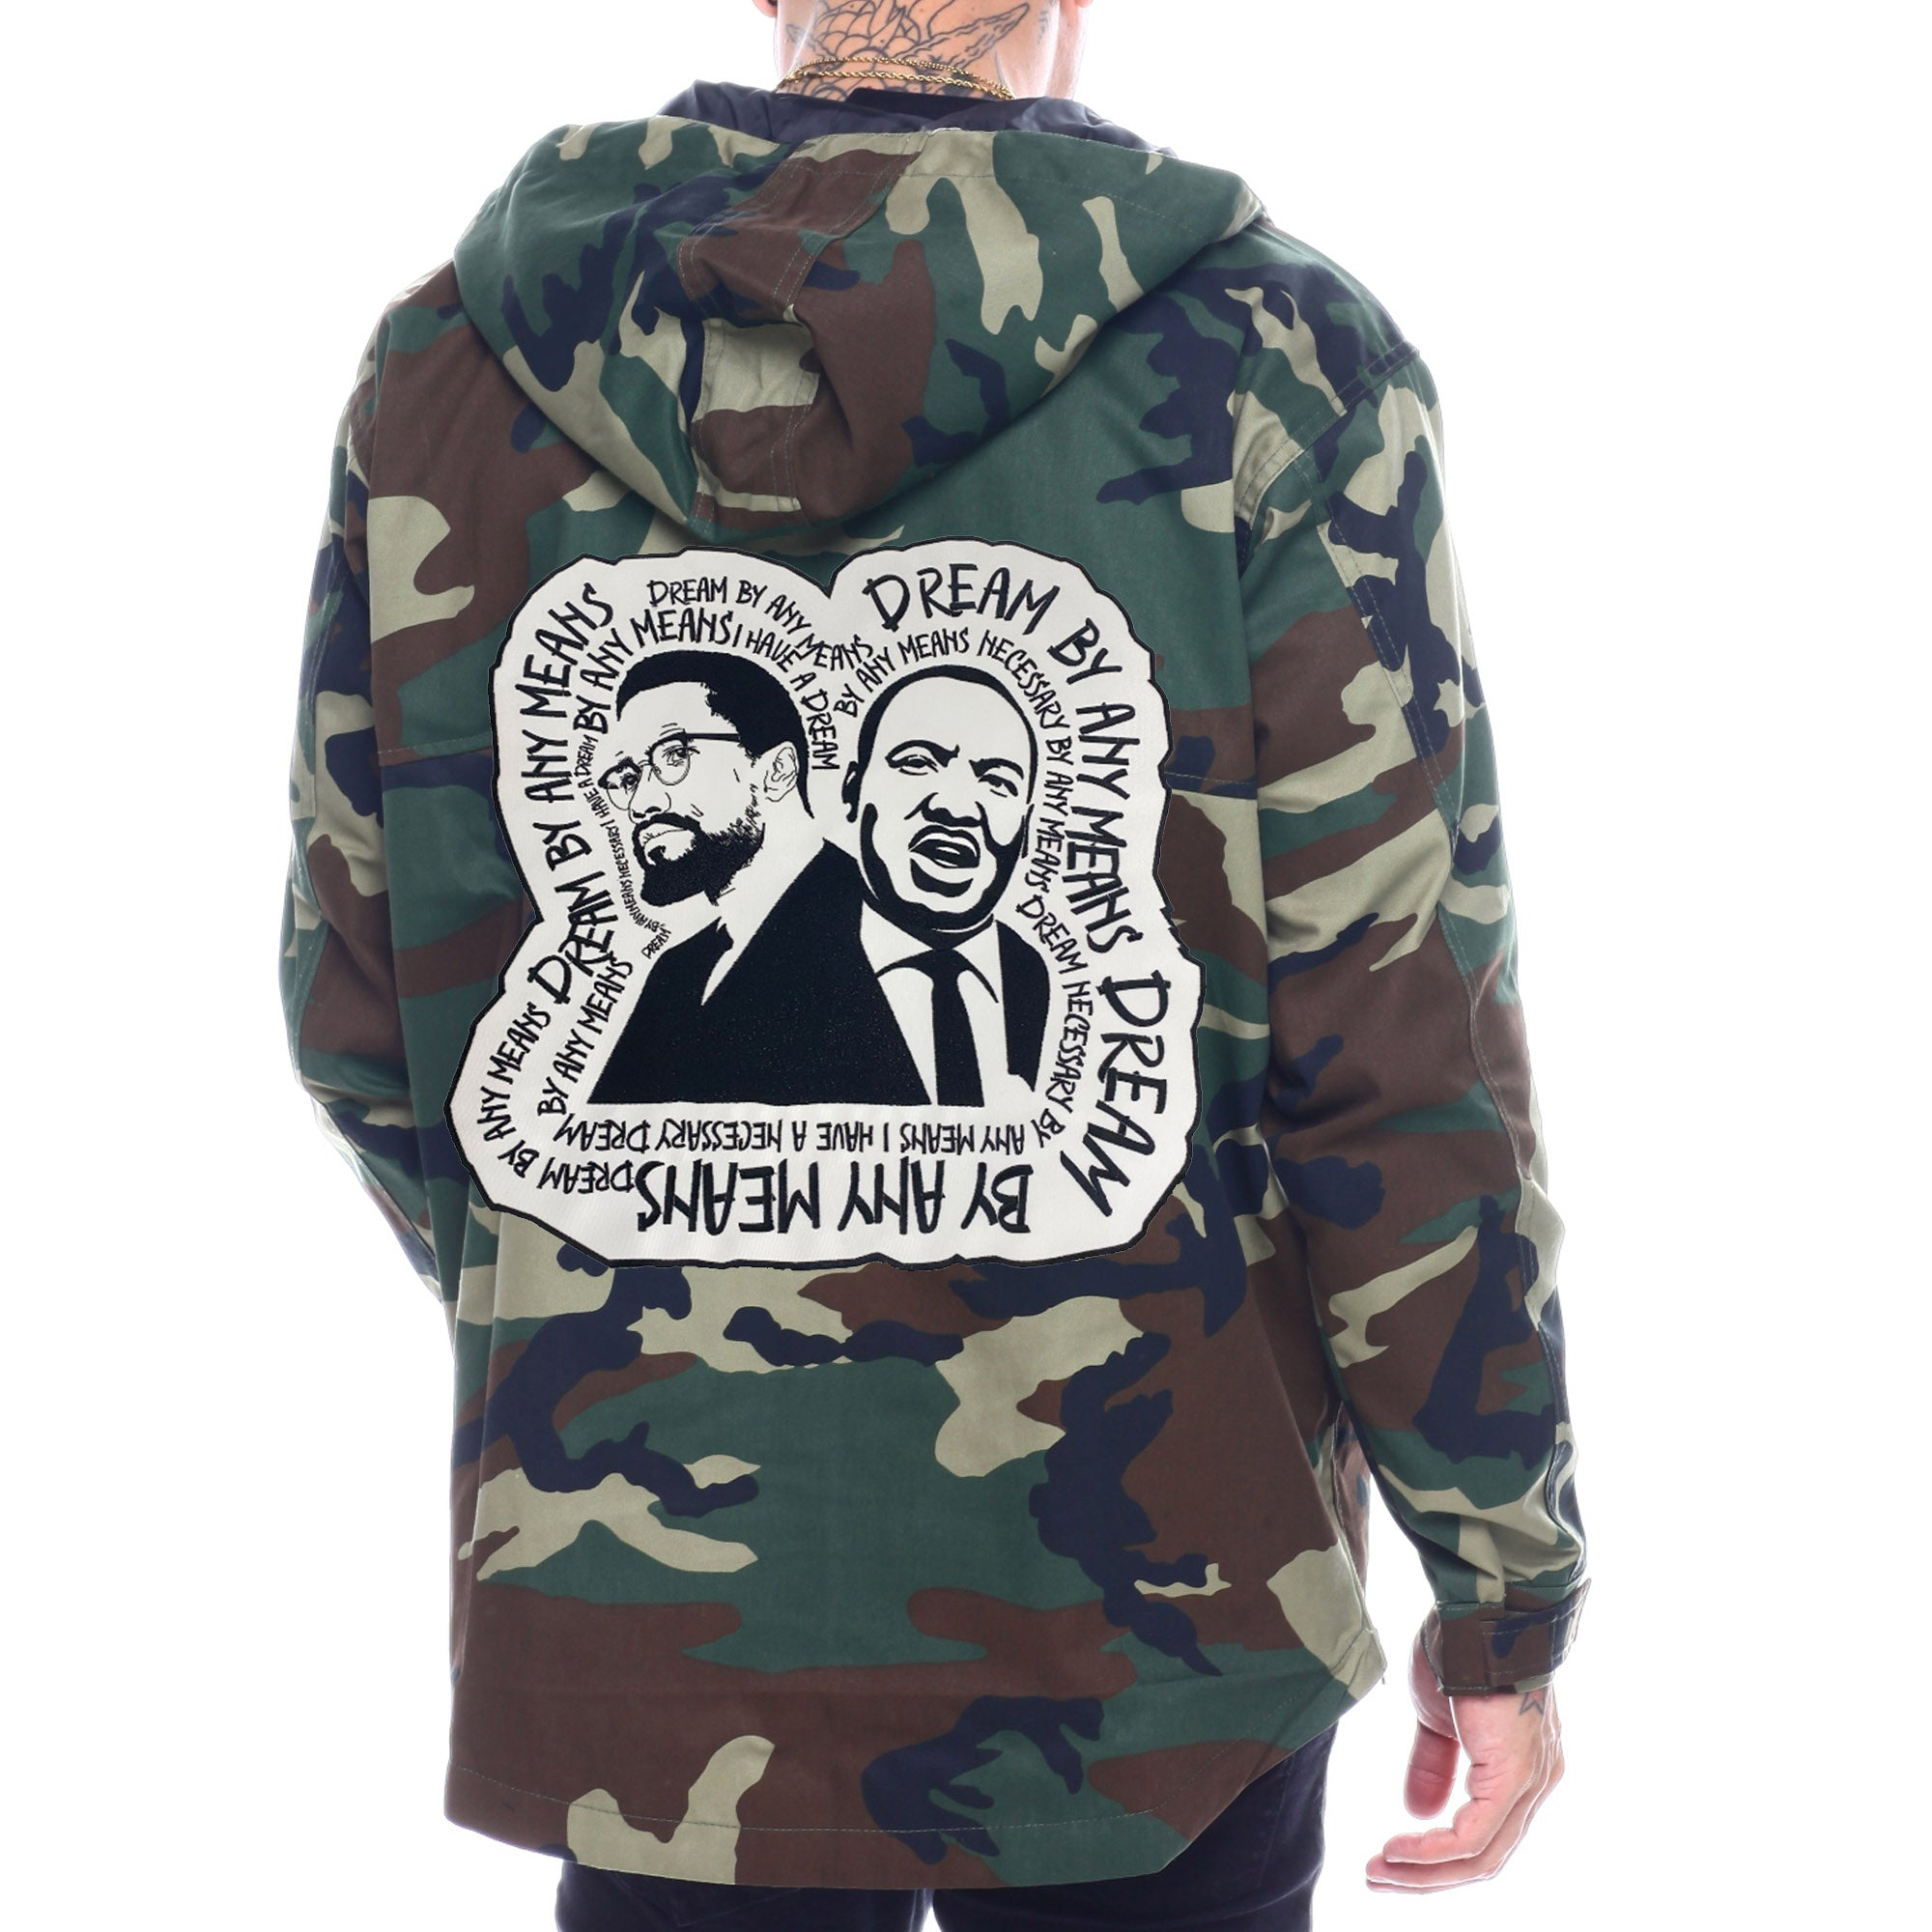 Dream By Any Means Camo Pullover - The Carter Brand - Black By Popular Demand - Rooting For Everybody Black - Black Pride Apparel